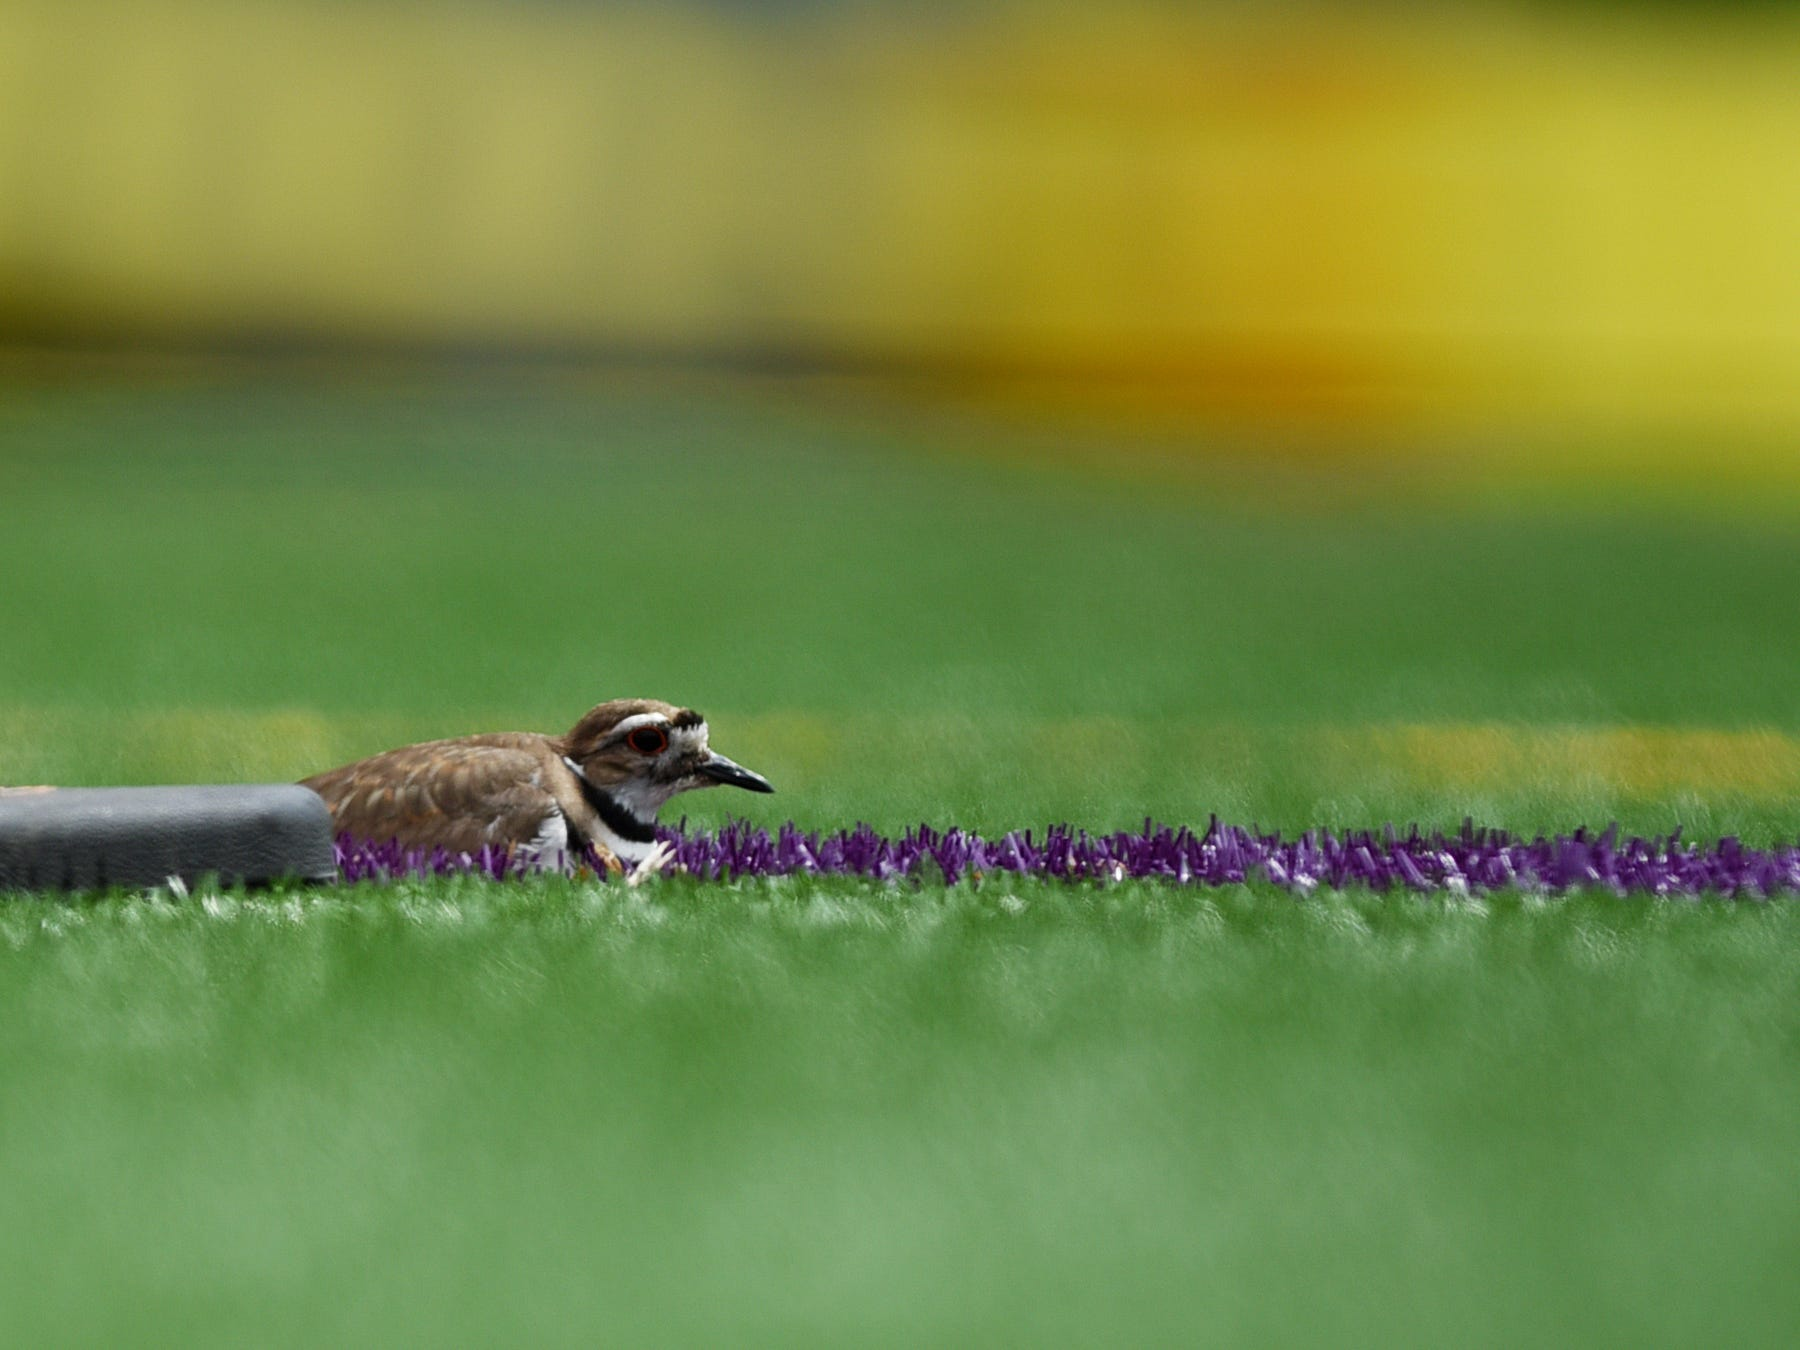 A protected bird called a killdeer has taken up residence on the artificial turf in the Votee Park soccer field where she has laid her eggs. The nesting area is cordoned off and soccer games have moved to another field. The nesting killdeer is shown in Teaneck  on Friday May 10, 2019.